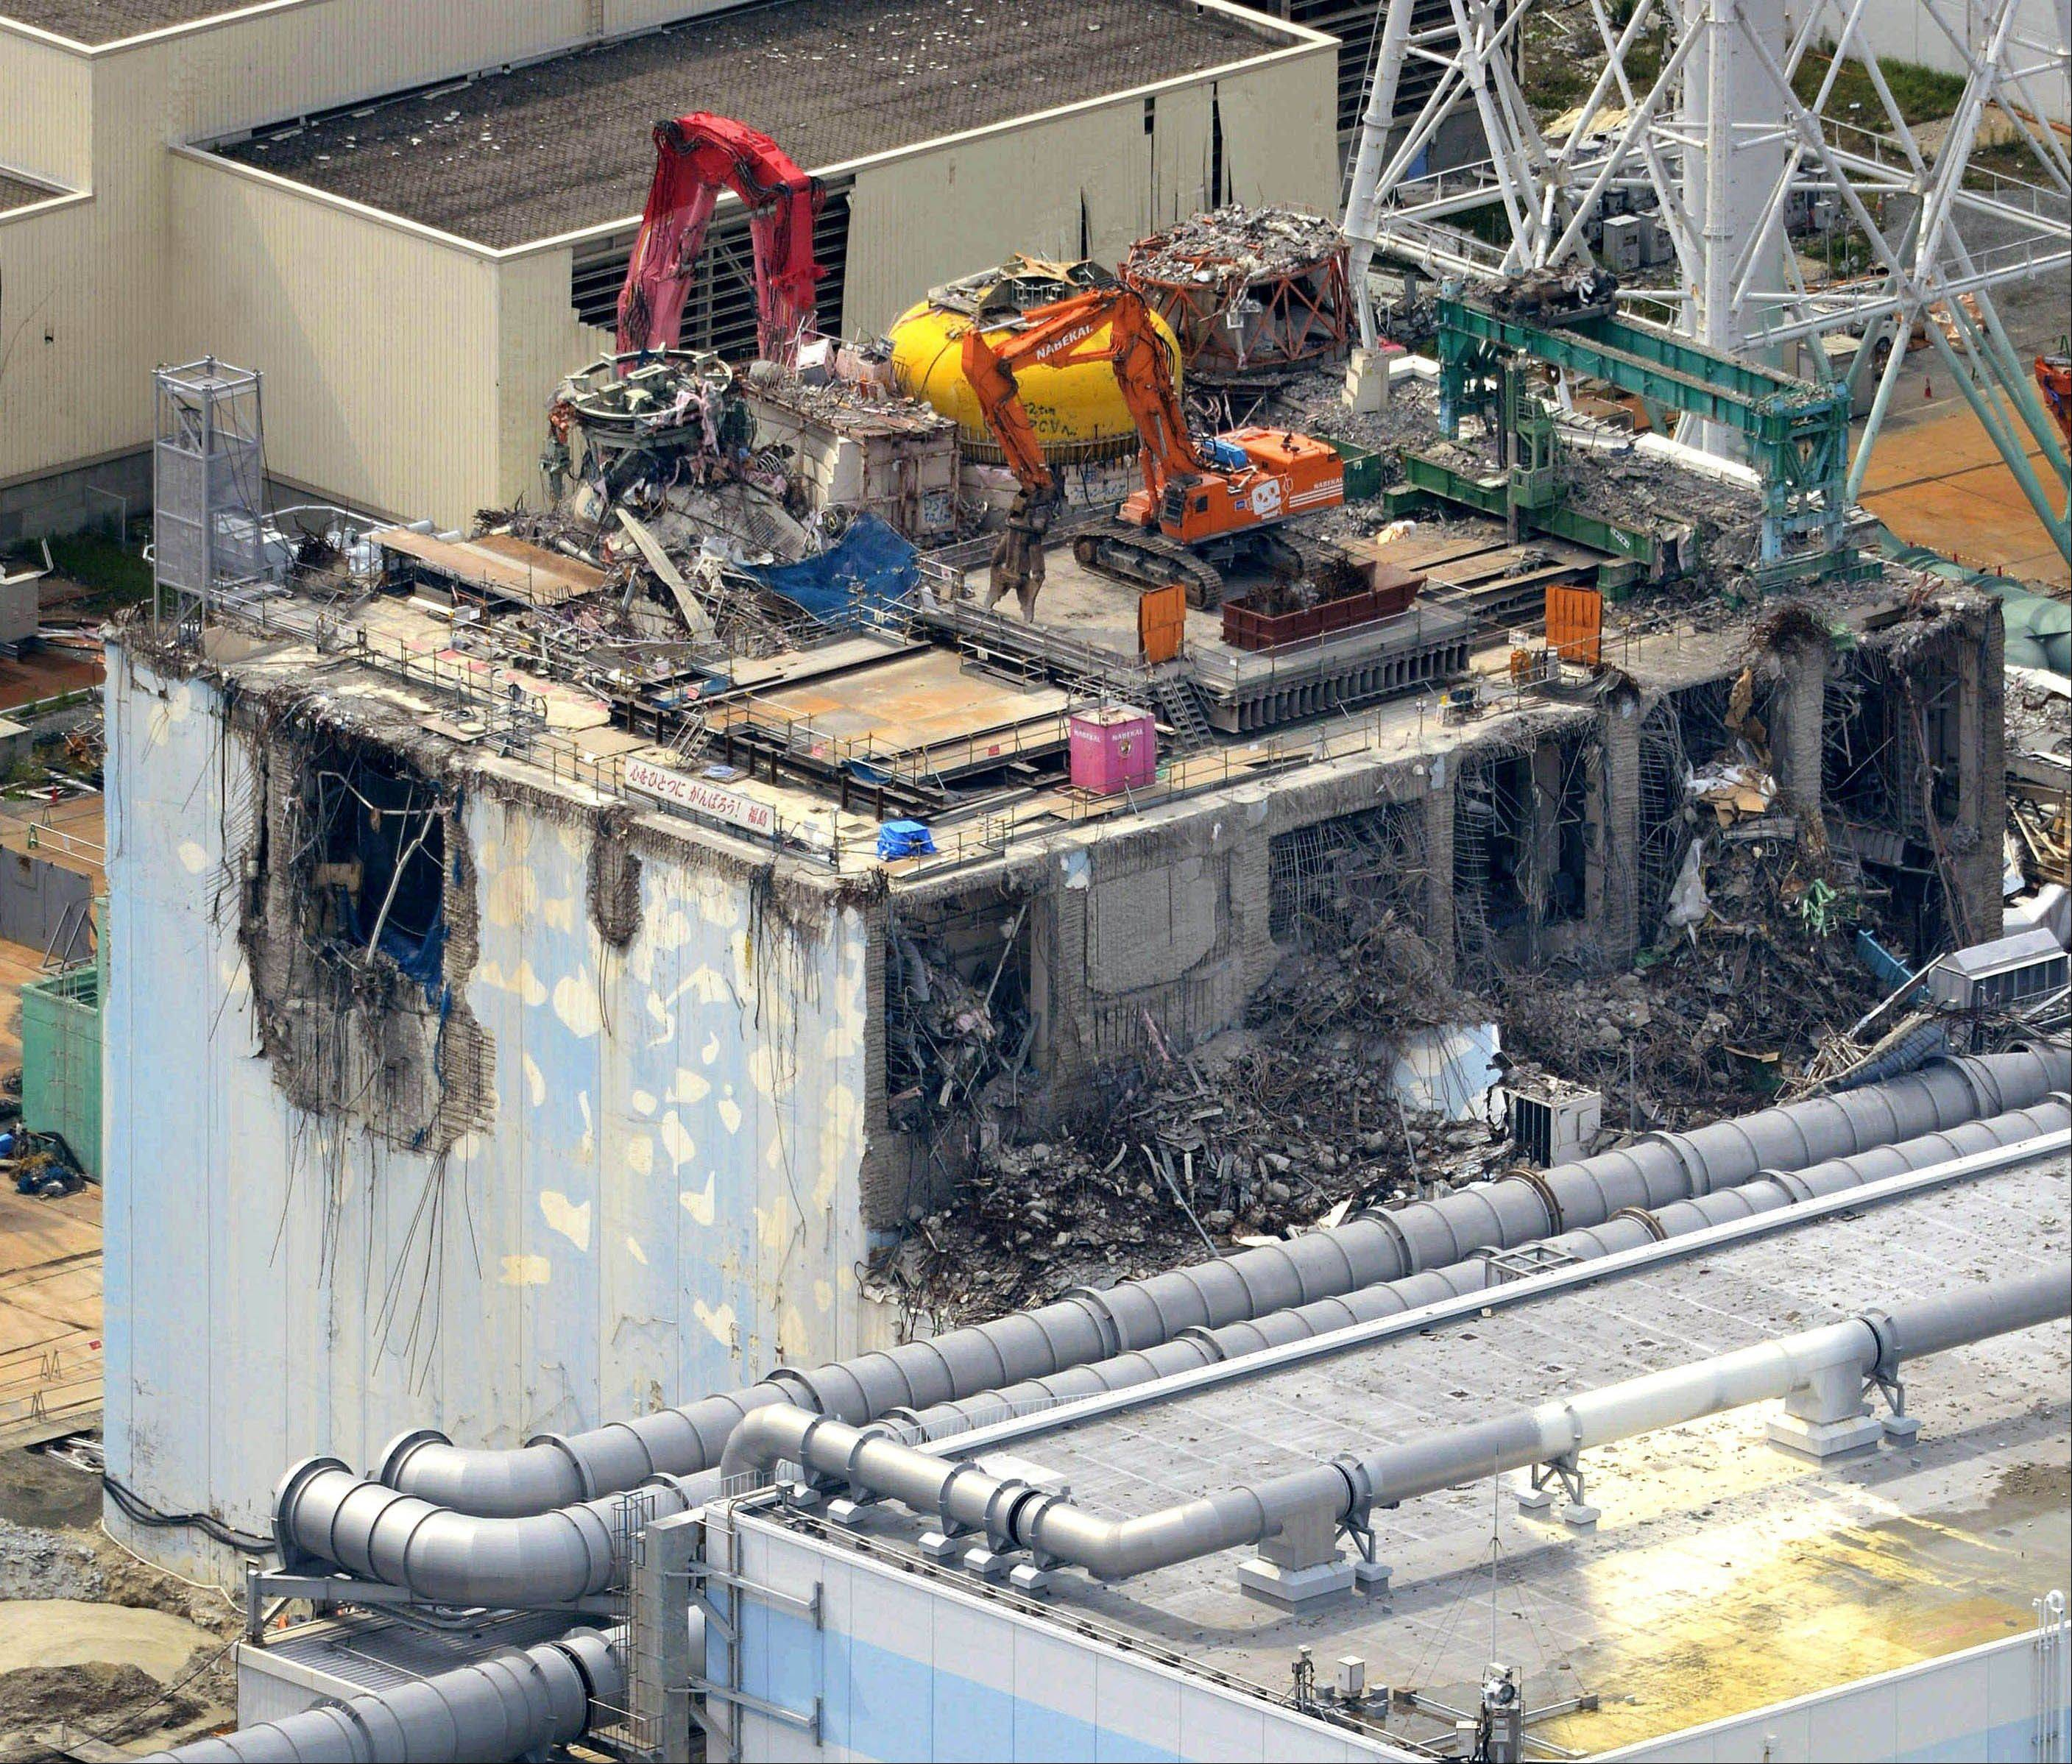 The rubble is removed from the damaged No. 4 reactor building at Tokyo Electric Power Co.'s tsunami-crippled Fukushima Dai-ichi nuclear power plant in Okuma town, Fukushima prefecture, northeastern Japan, Thursday.